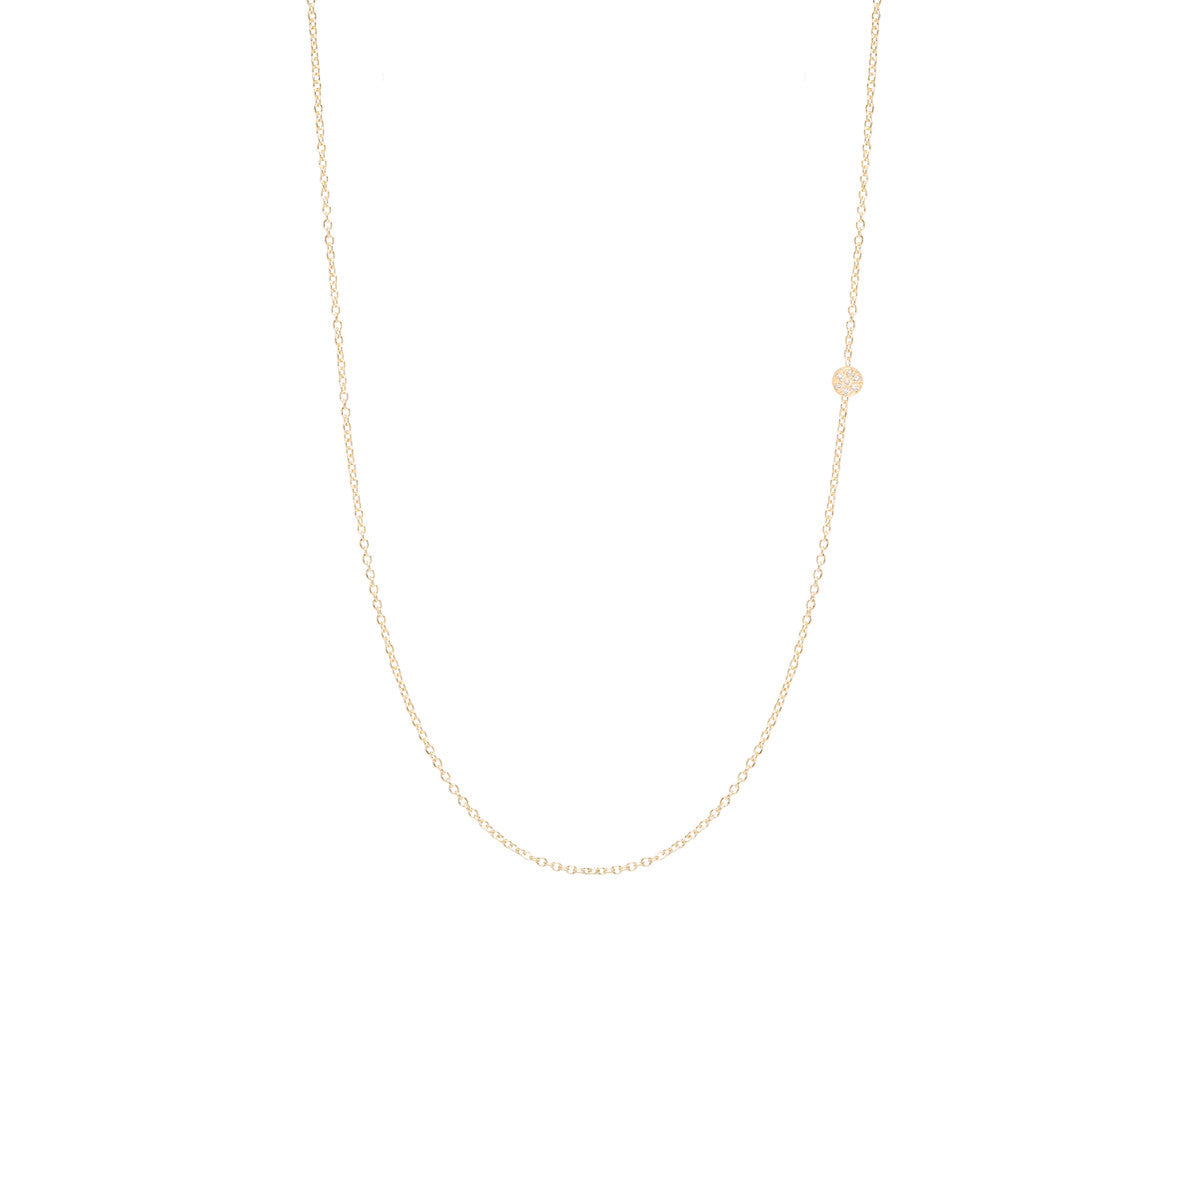 Zoë Chicco 14kt Yellow Gold Itty Bitty Off-Center Pave Disc Necklace